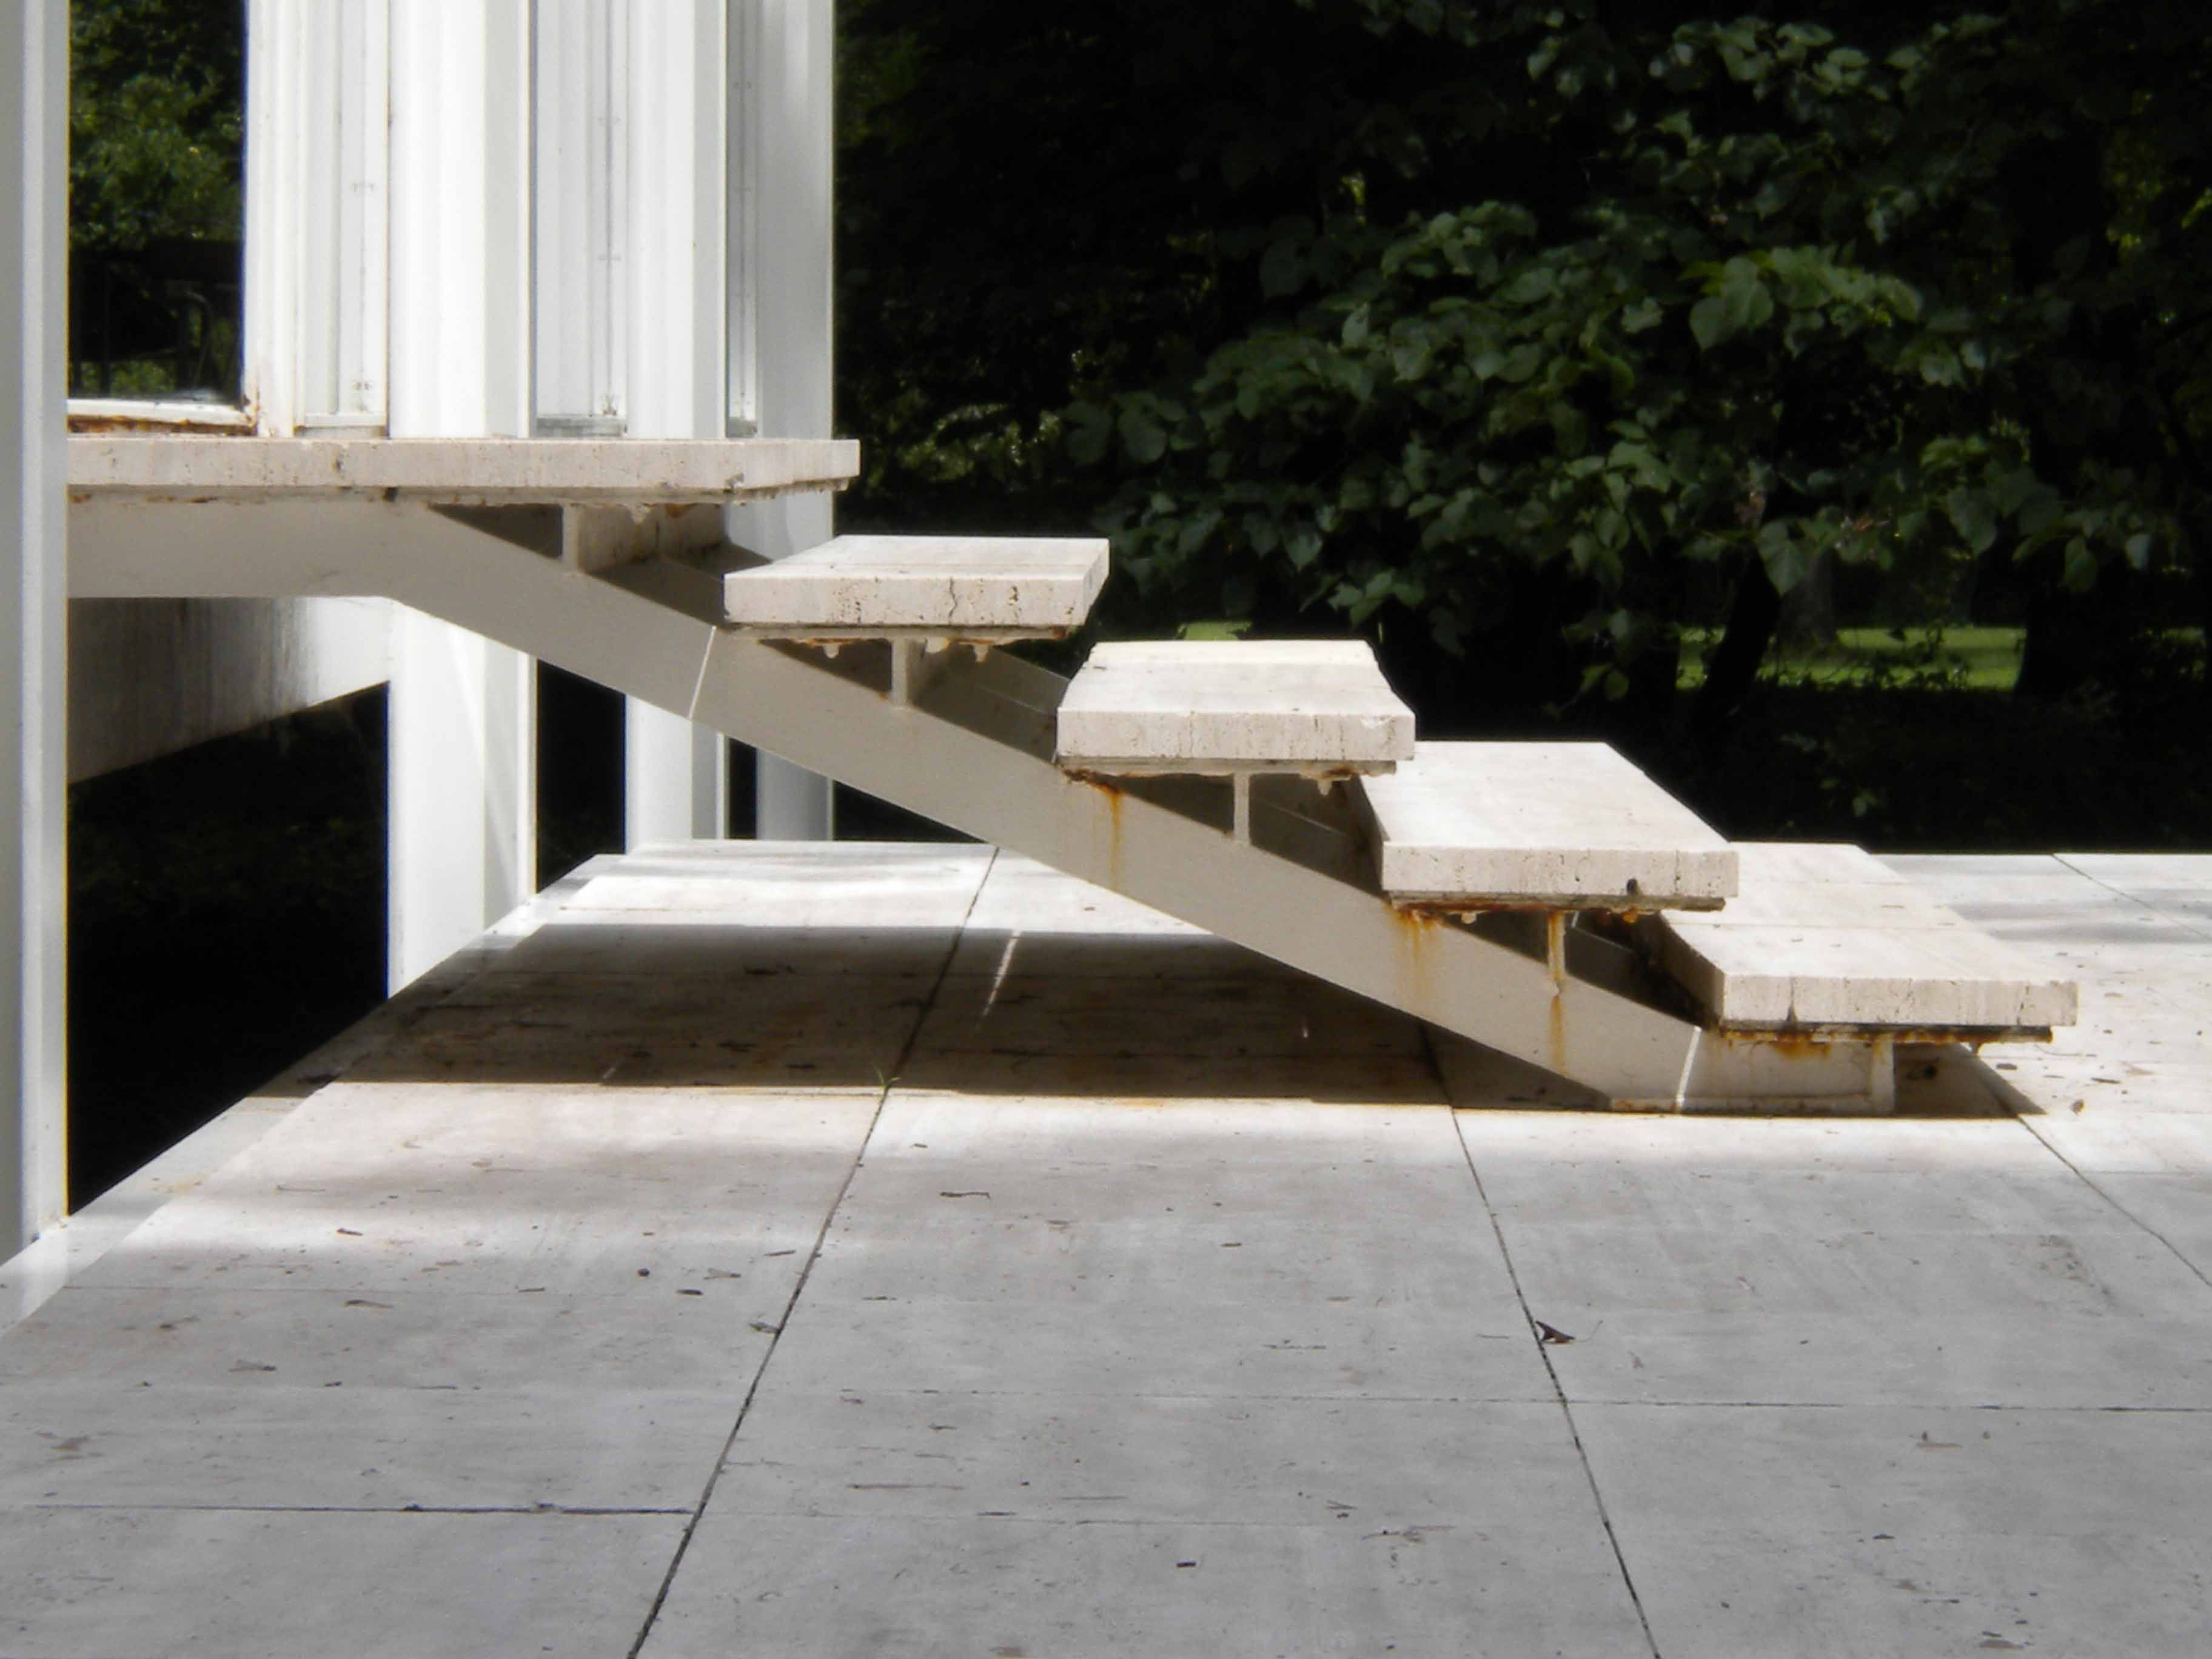 Farnsworth house by mies van der rohe exterior 8 jpg - To Drool Over The Farnsworth House Designed By Ludwig Mies Van Der Rohe Between I Have Family In Chicago